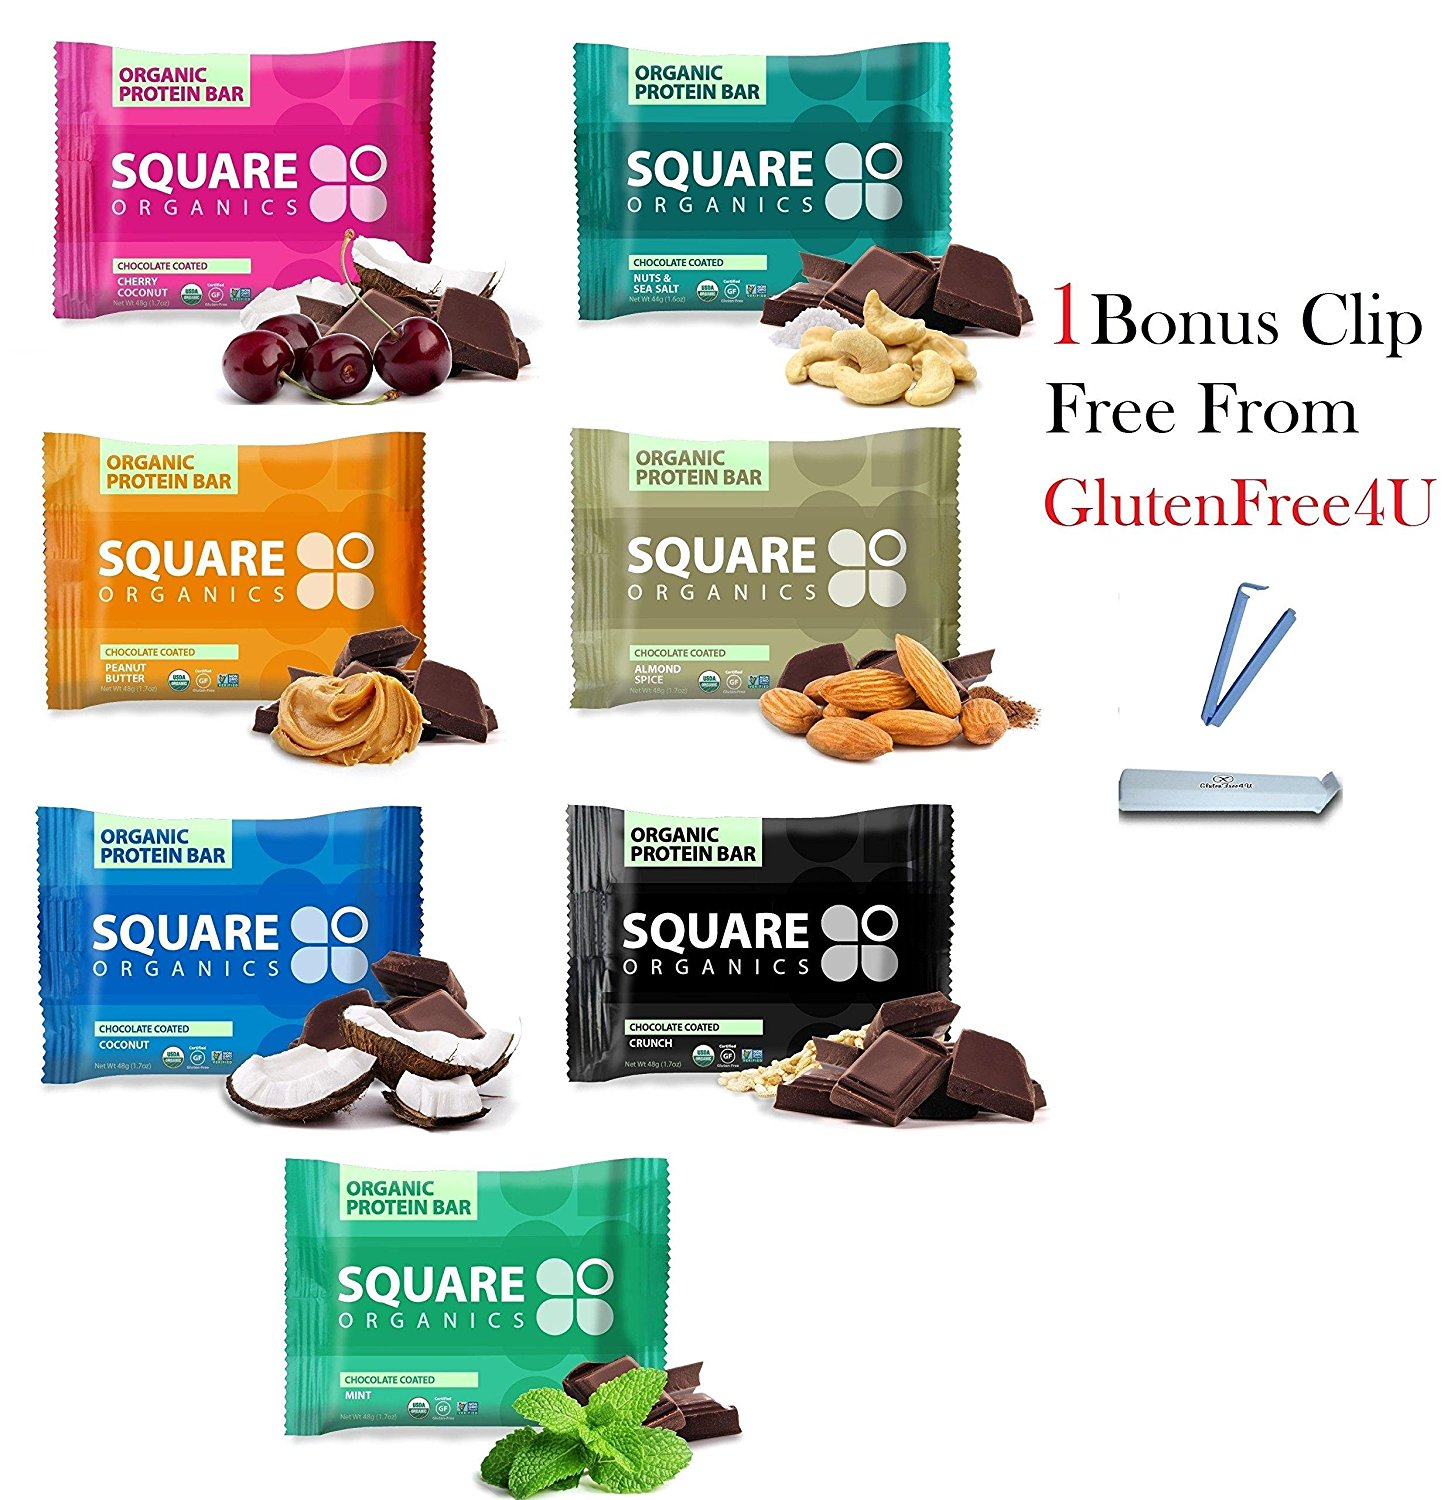 Squarebar Organic Protein Bar, All Variety! Pack Of 7 + 1 Bonus Clip From Glutenfree4U